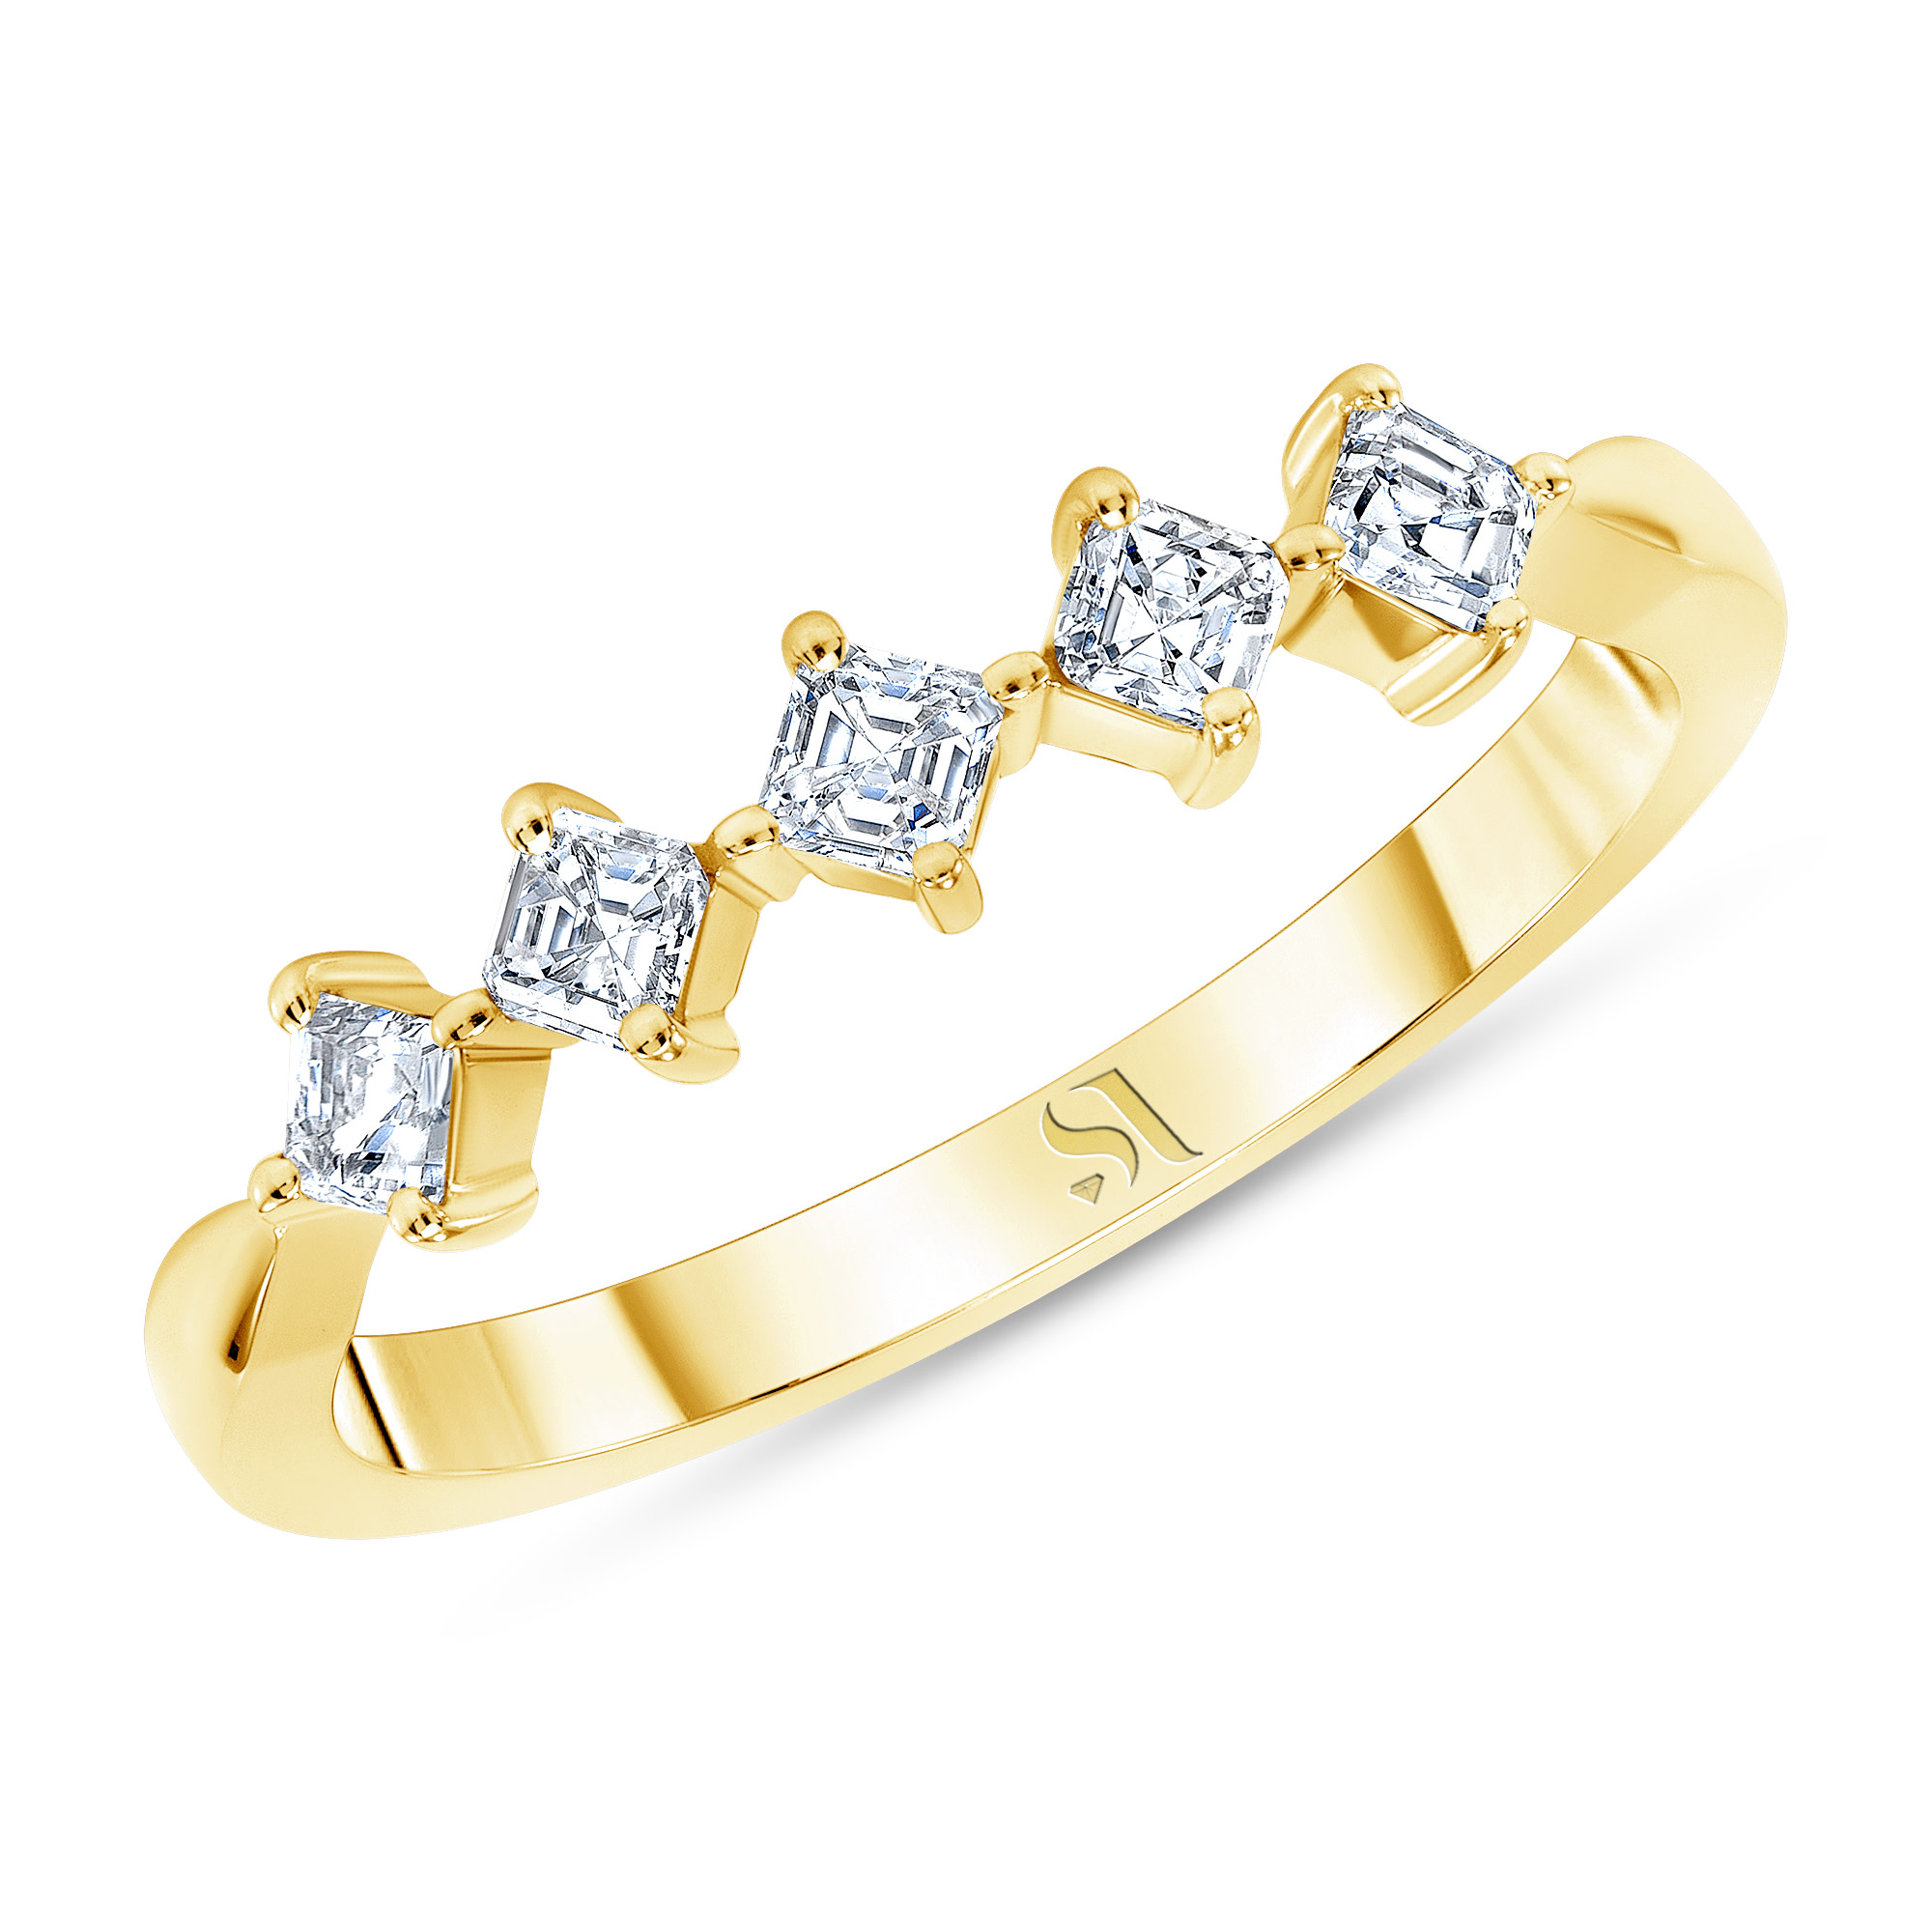 ASSCHER CUT DIAMOND RING - YELLOW GOLD